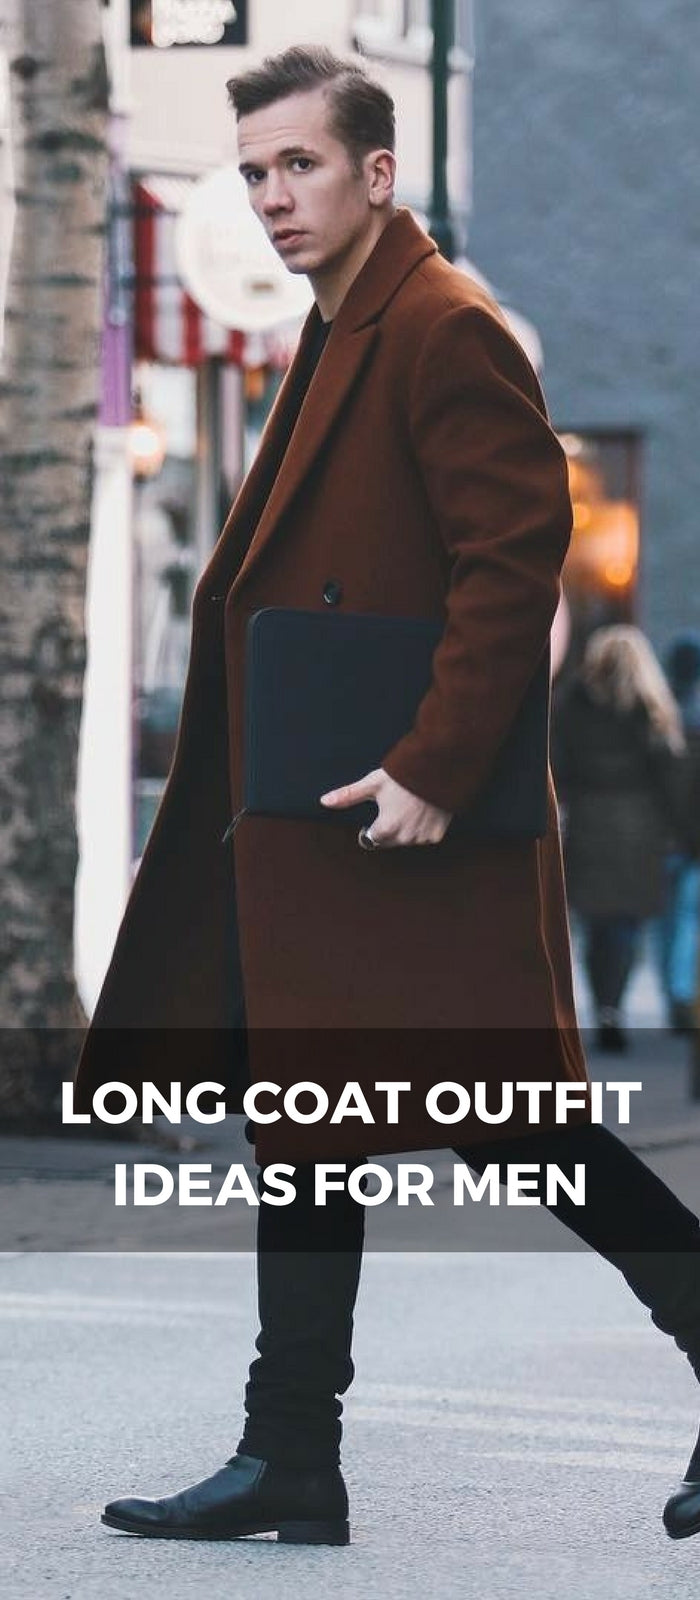 9 Coolest Ways To Wear Long Coat For Men